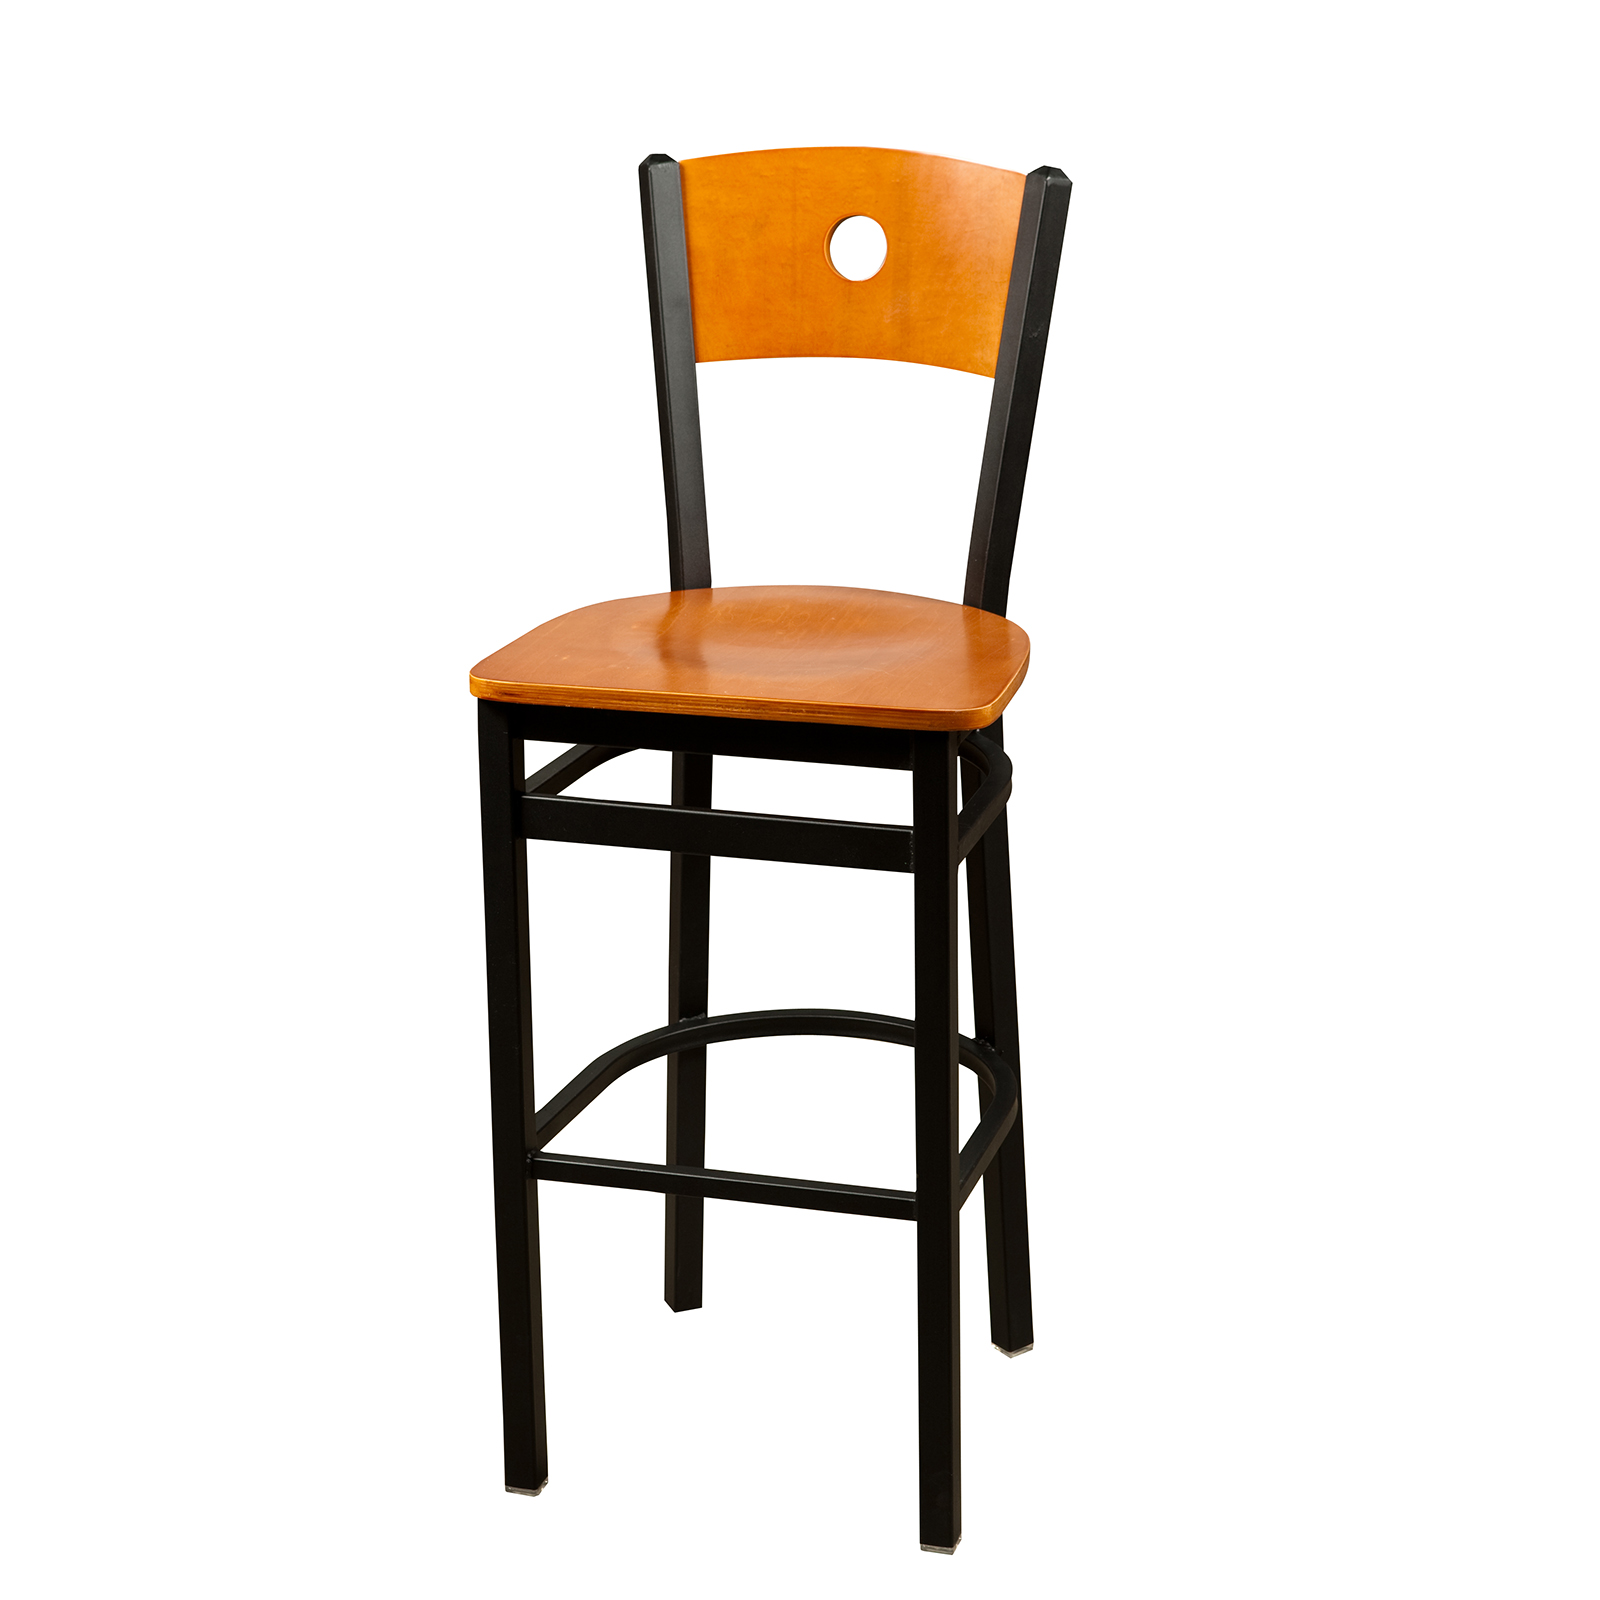 Oak Street SL2150-1-B bar stool, indoor